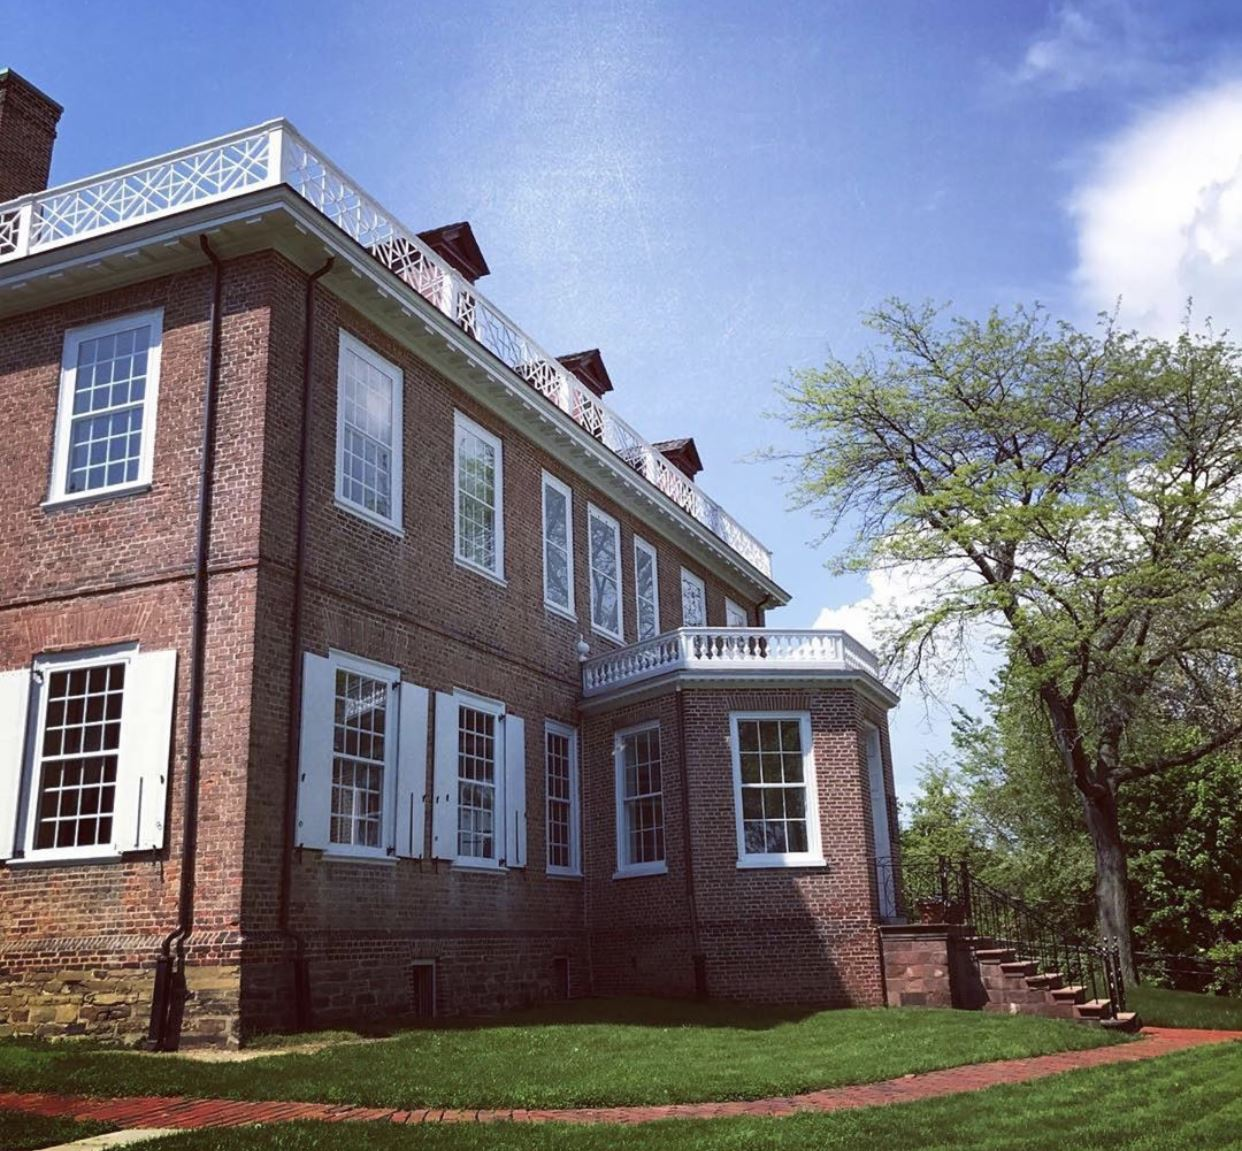 the Schuyler Mansion State Historic Site! Home to Philip J. Schuyler, a Revolutionary War general, and his wife Catharine Van Rensselaer where they raised their eight children, this site is a must-see for Hamilton fans. Alexander Hamilton proposed to and married Elizabeth Schuyler here in 1870.